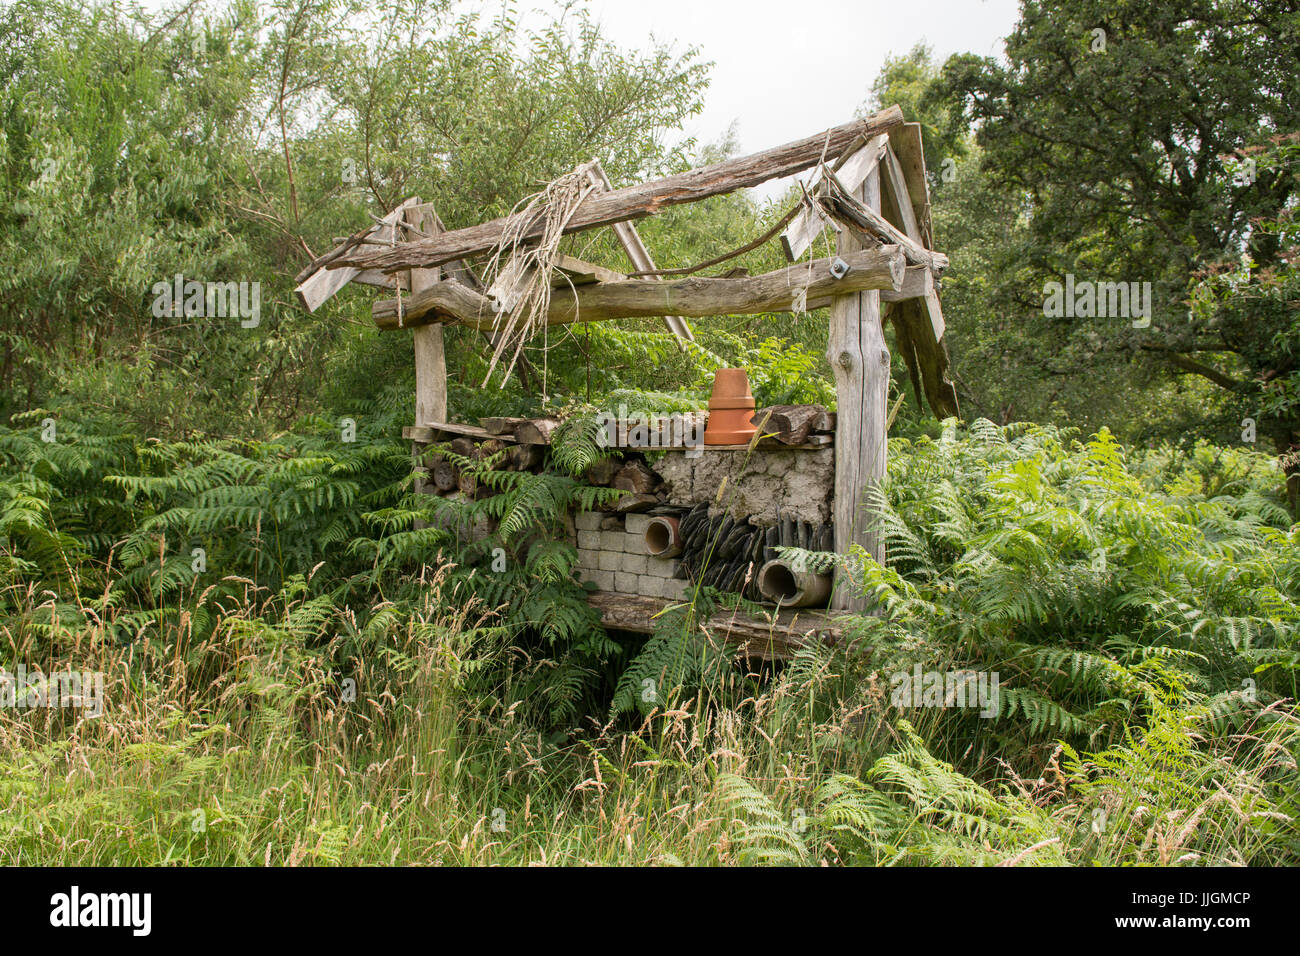 Insect Hotel at the Cashel Native Forest owned by the Royal Scottish  Forestry Society, Loch Lomond, Scotland, UK - Stock Image